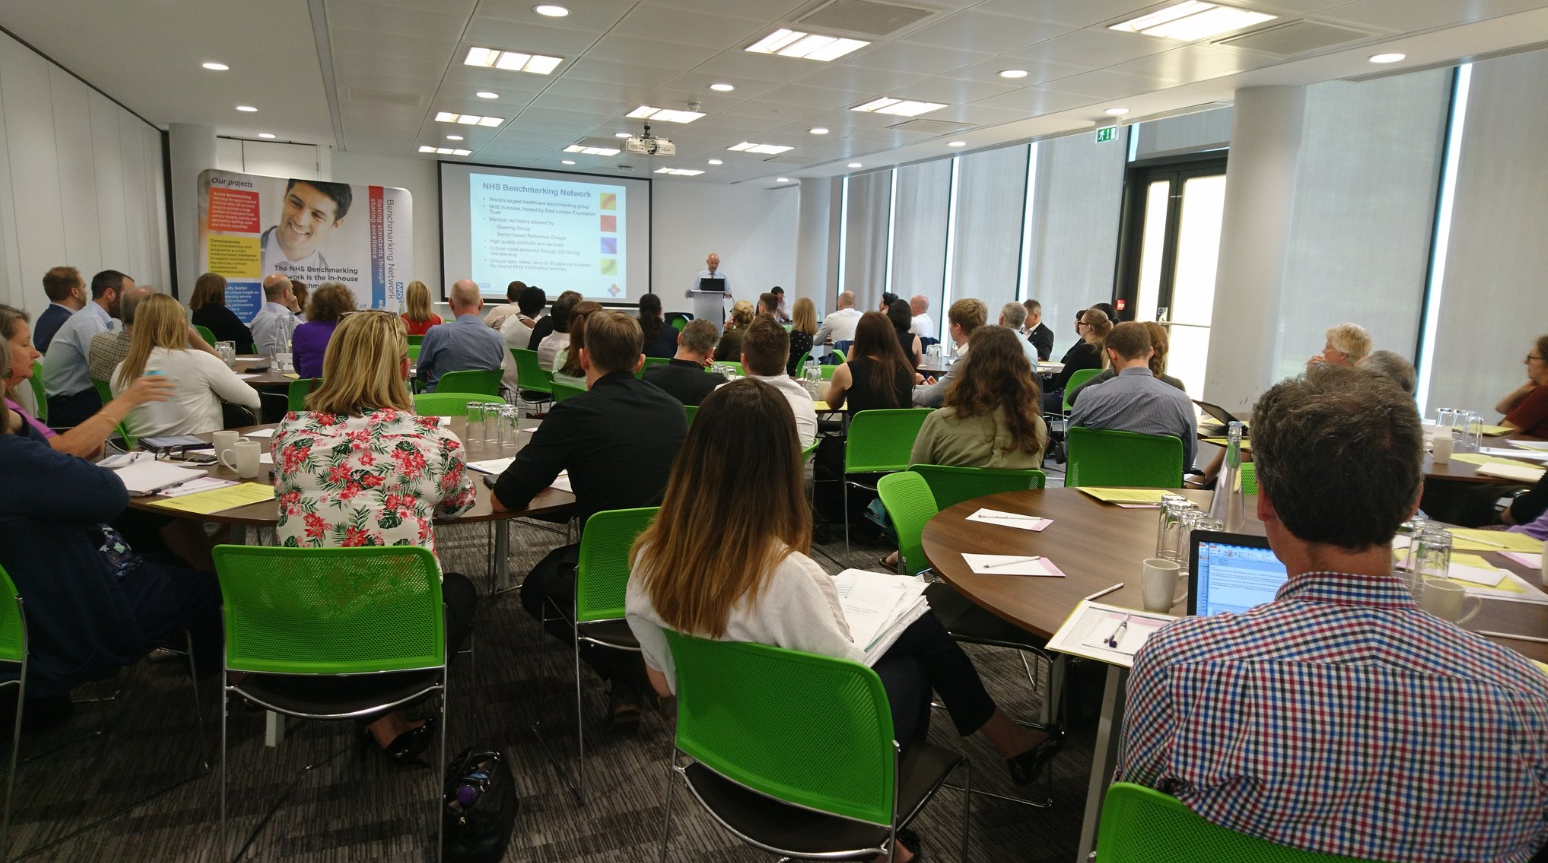 """South Regional Event, 15th May 2018  """"Excellent examples from peers on projects that are being undertaken. Fantastic insight from NHS Benchmarking Network on drivers of trends."""""""